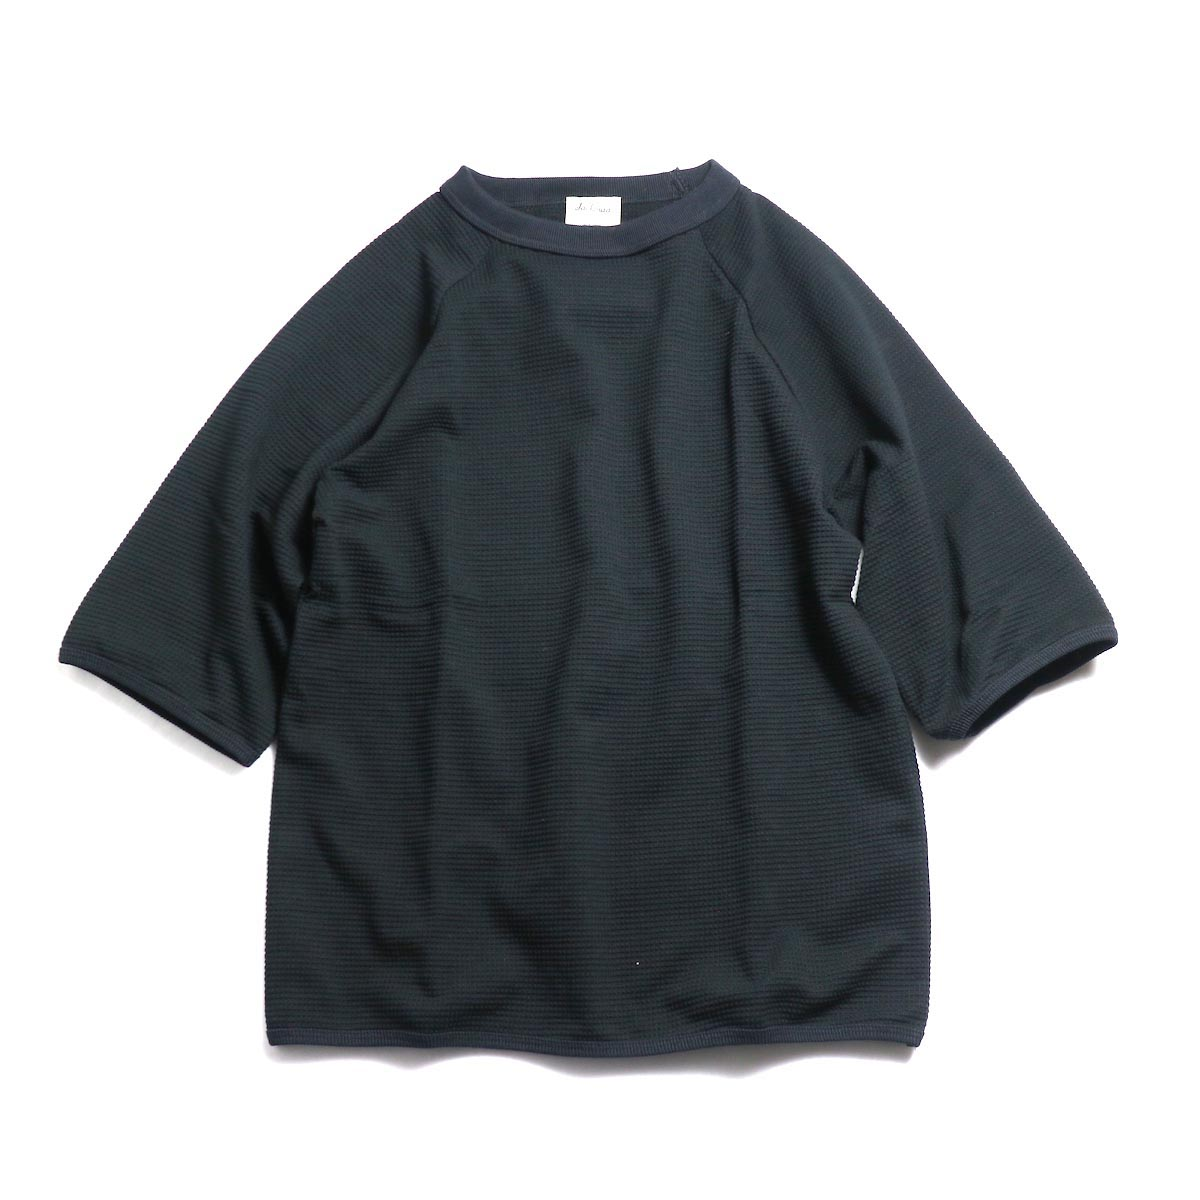 Jackman / 1/2 Sleeved T-Shirt -Black